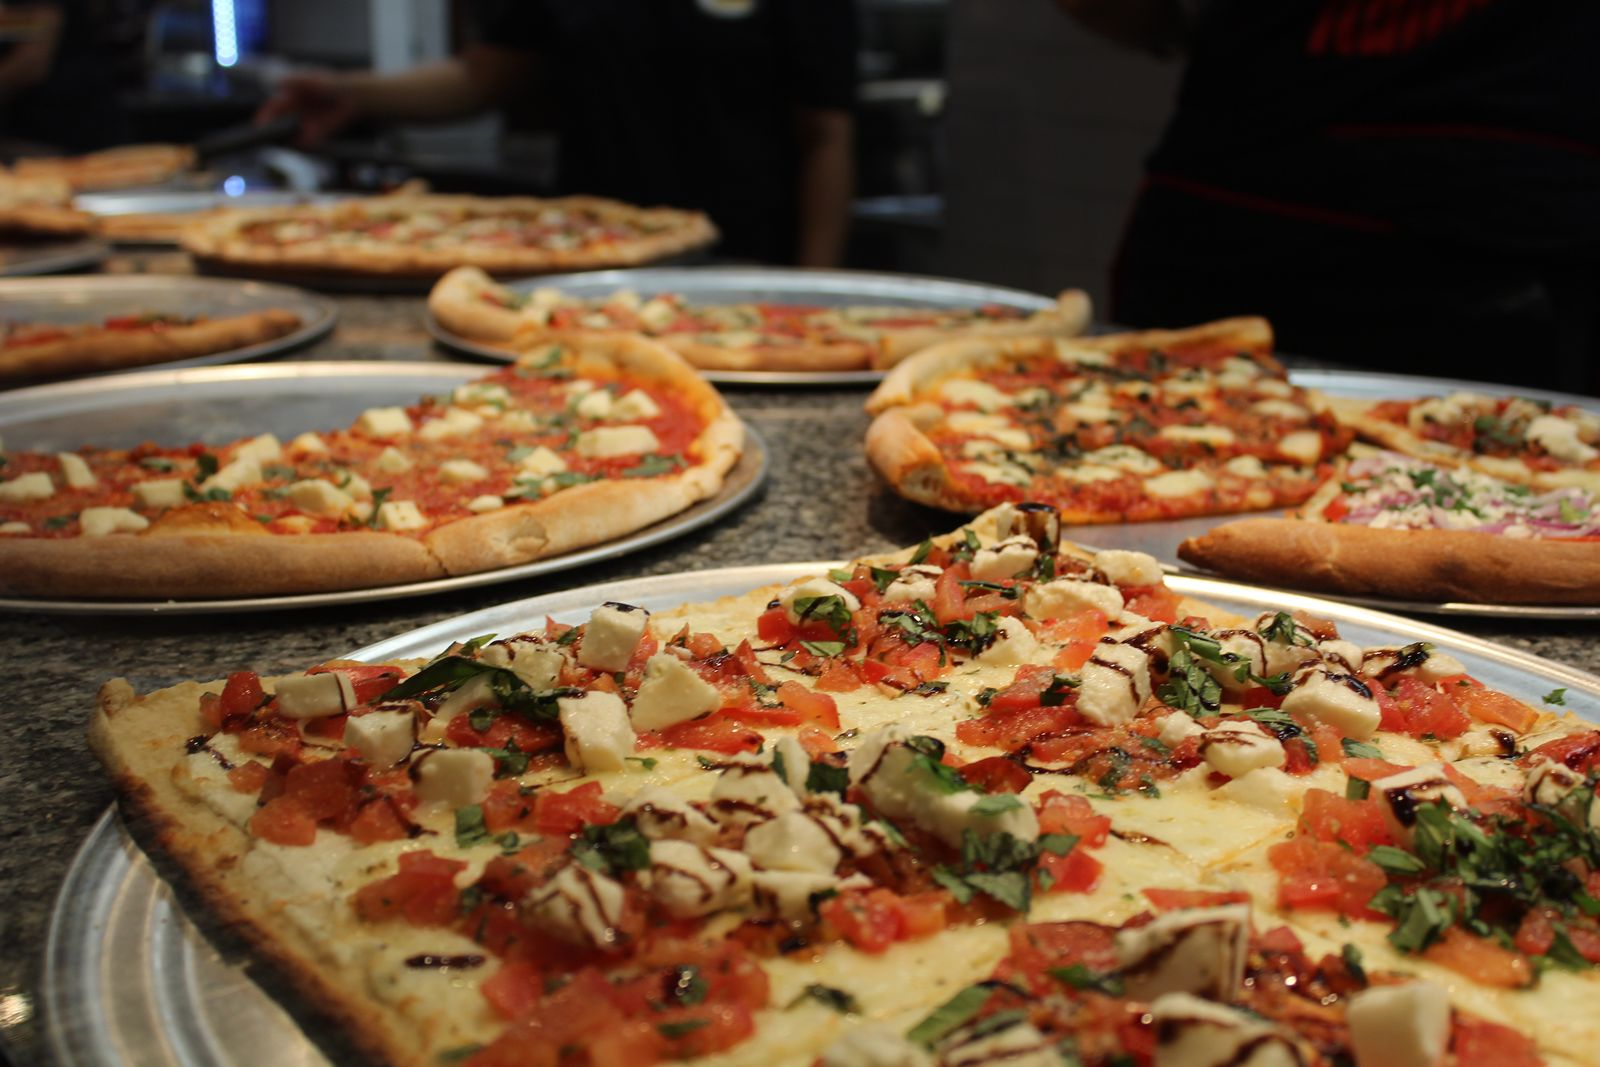 Squisito Pizza & Pasta Opens in Queenstown, MD with FranchiseeSquisito Pizza & Pasta Opens in Queenstown, MD with Franchisee